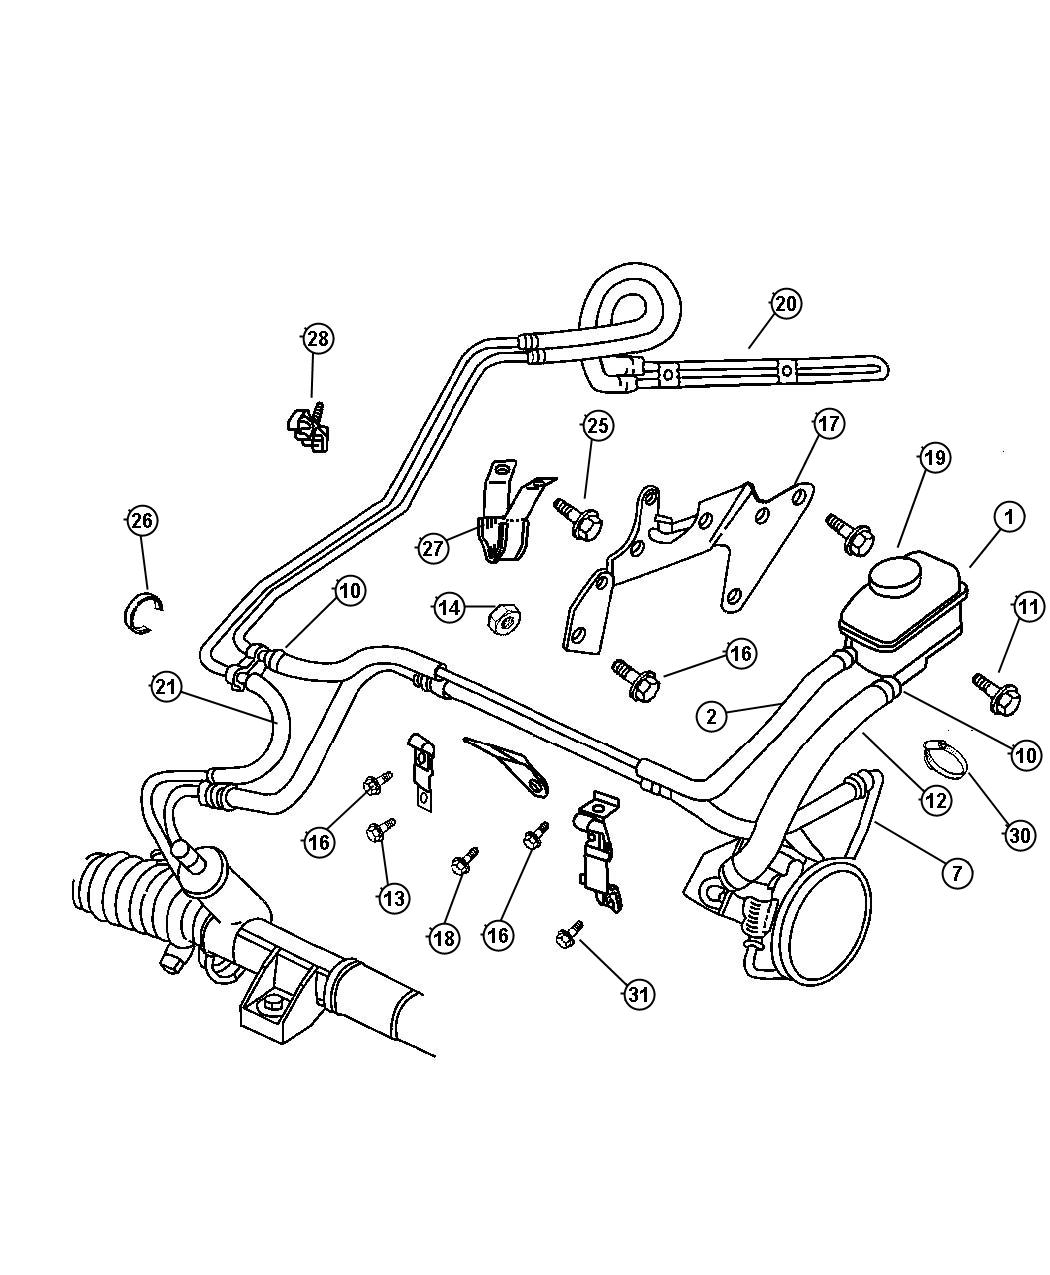 1995 chrysler cirrus fuel pump wiring diagram